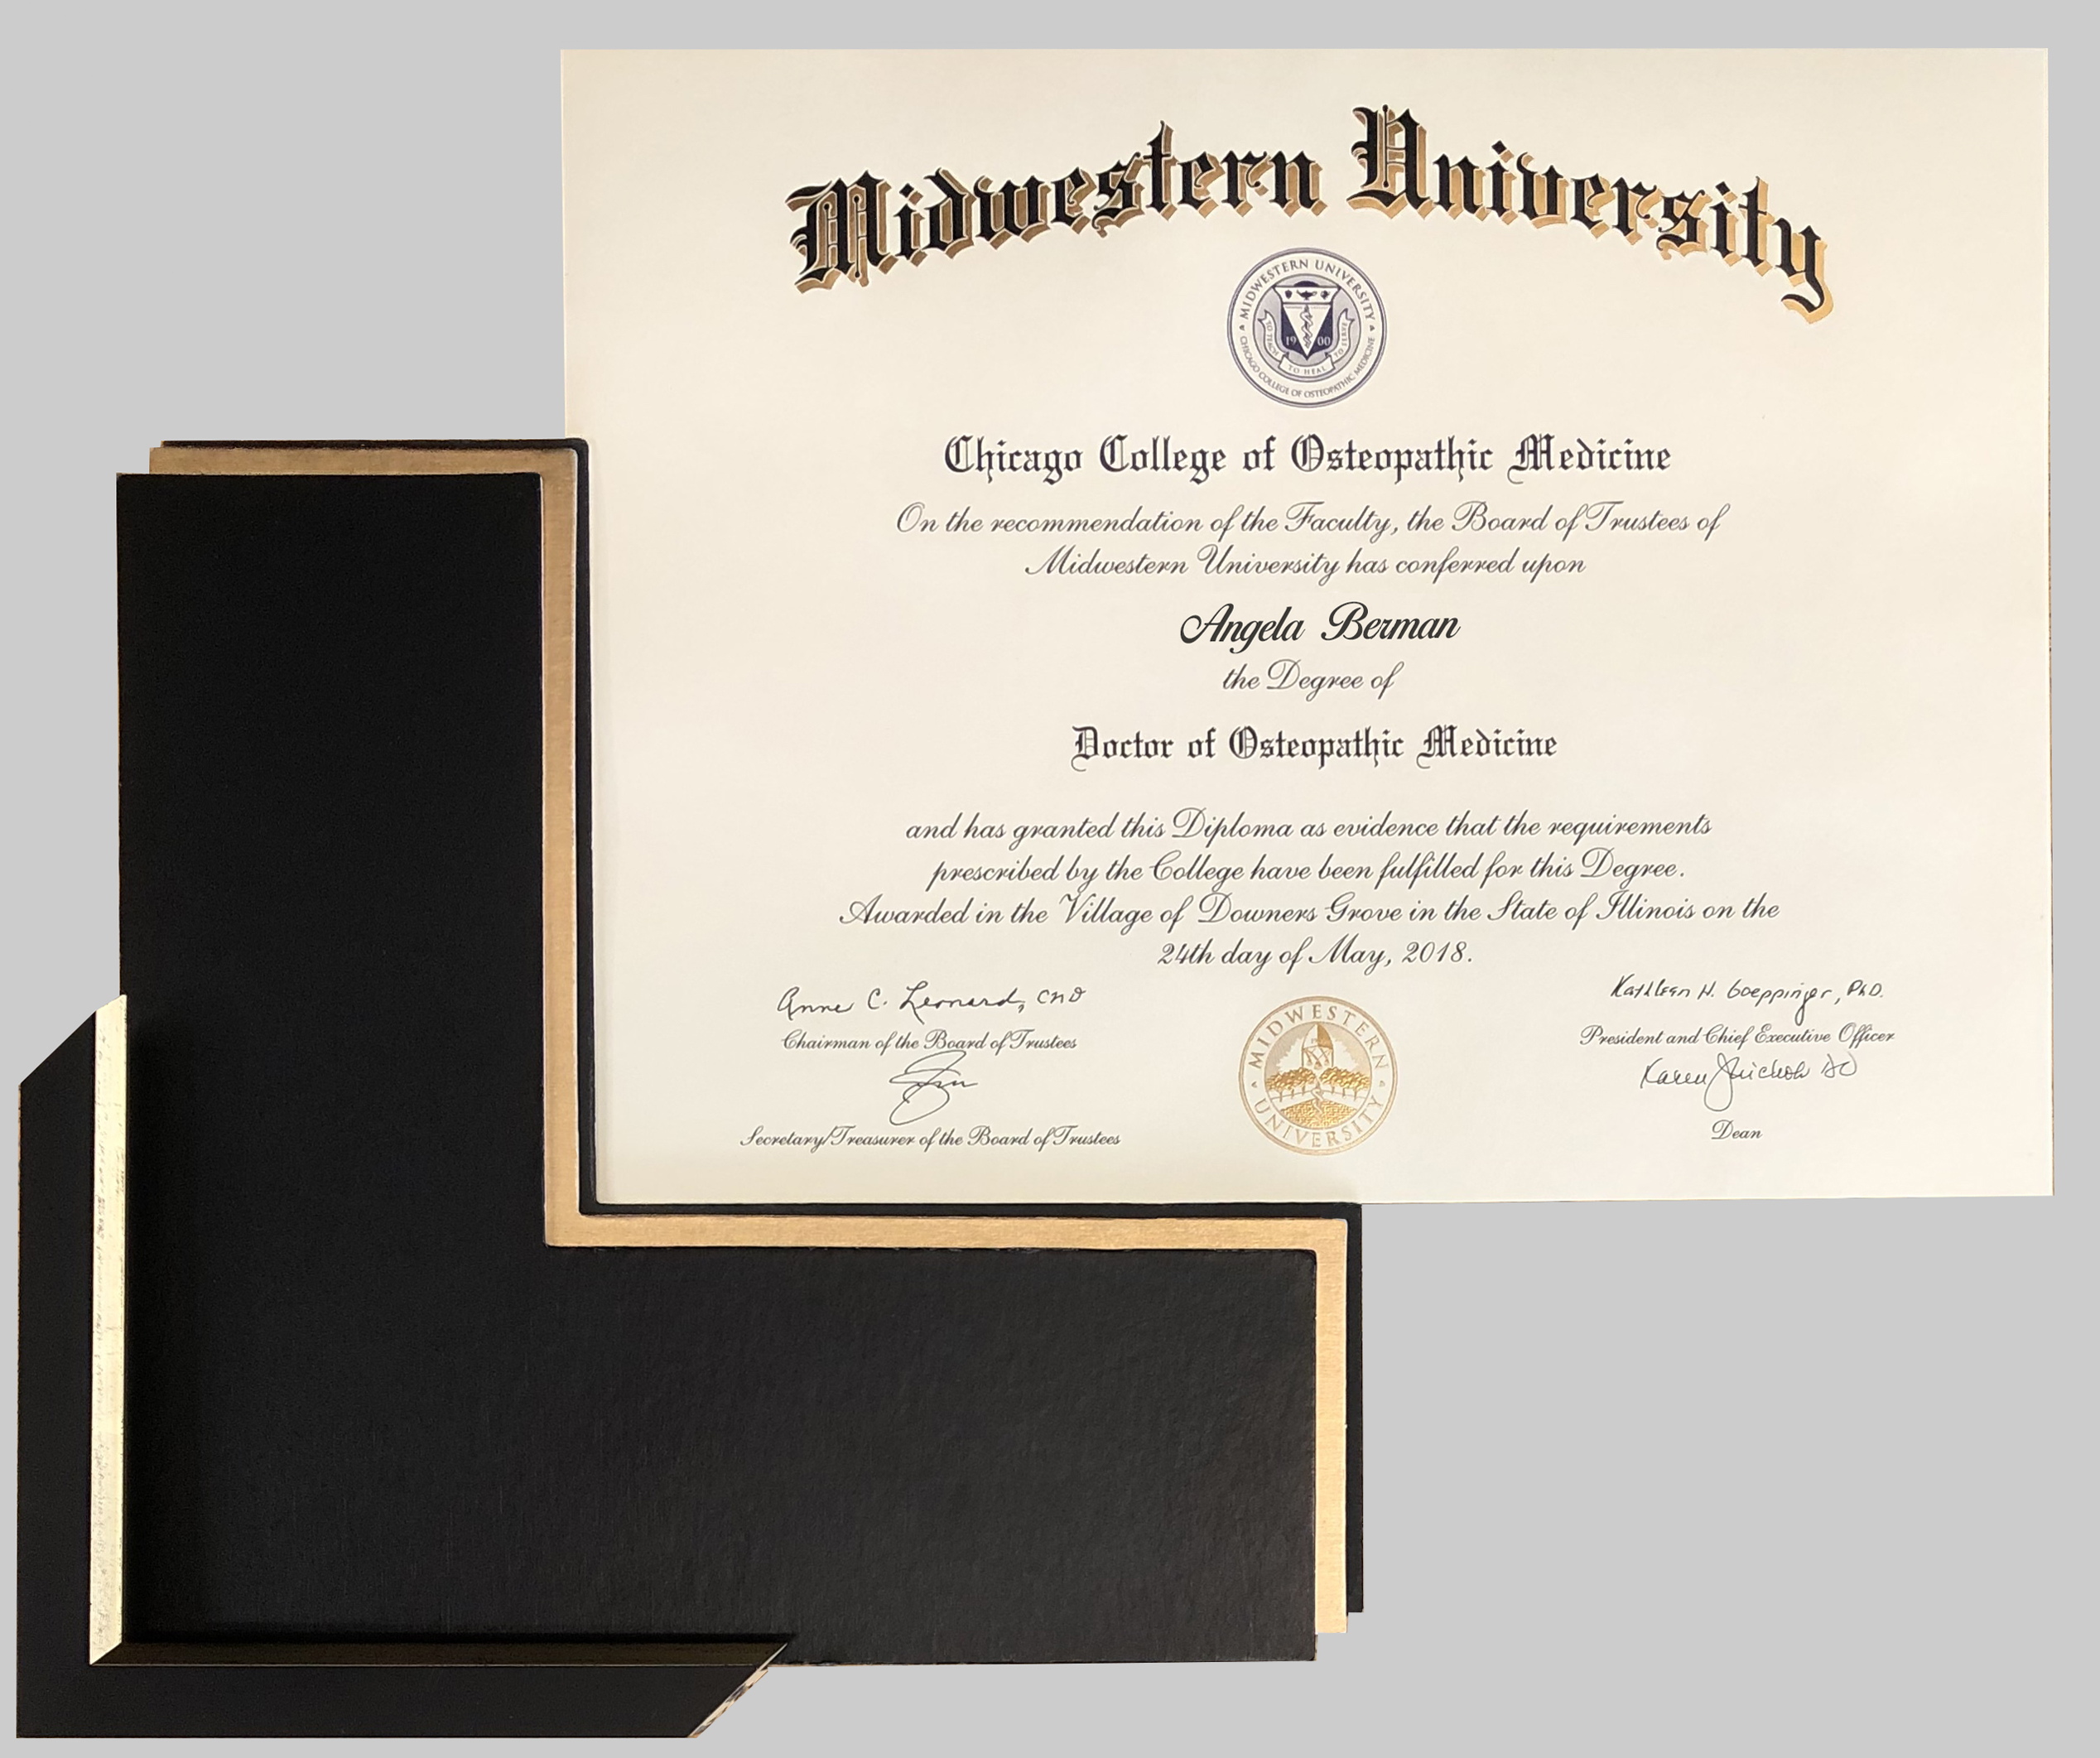 Midwestern Diploma